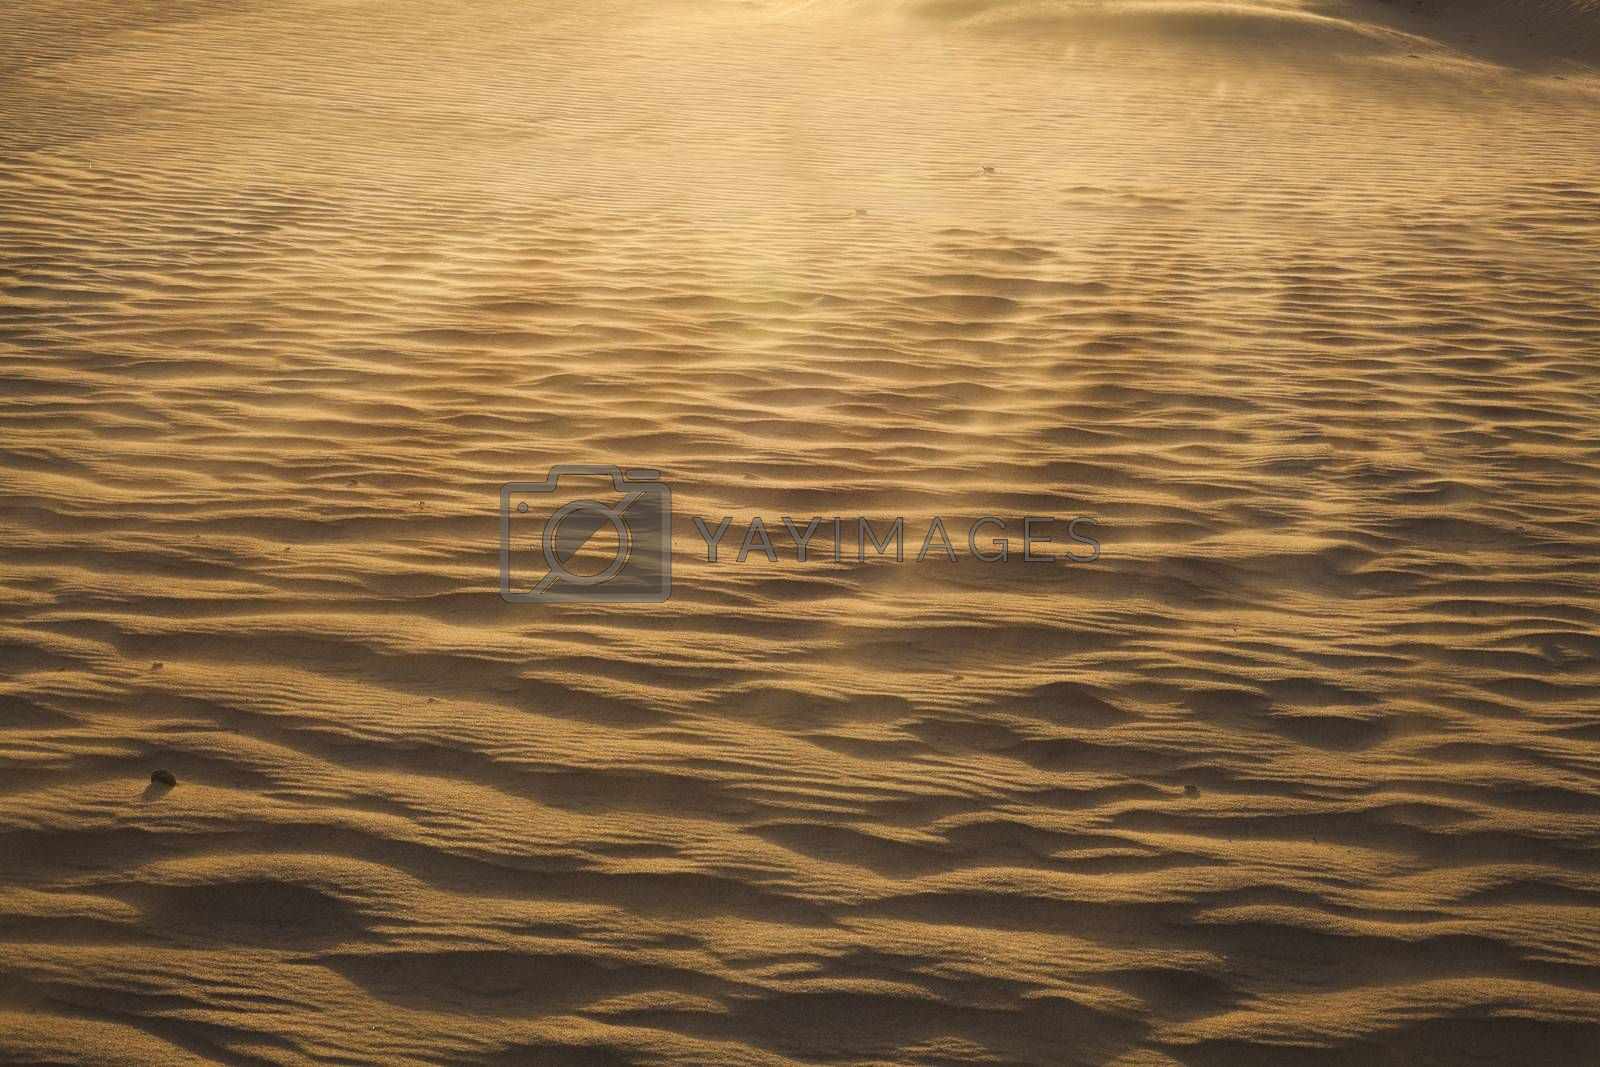 Landscape shot of the desert and the wind pattern on the sand, full frame